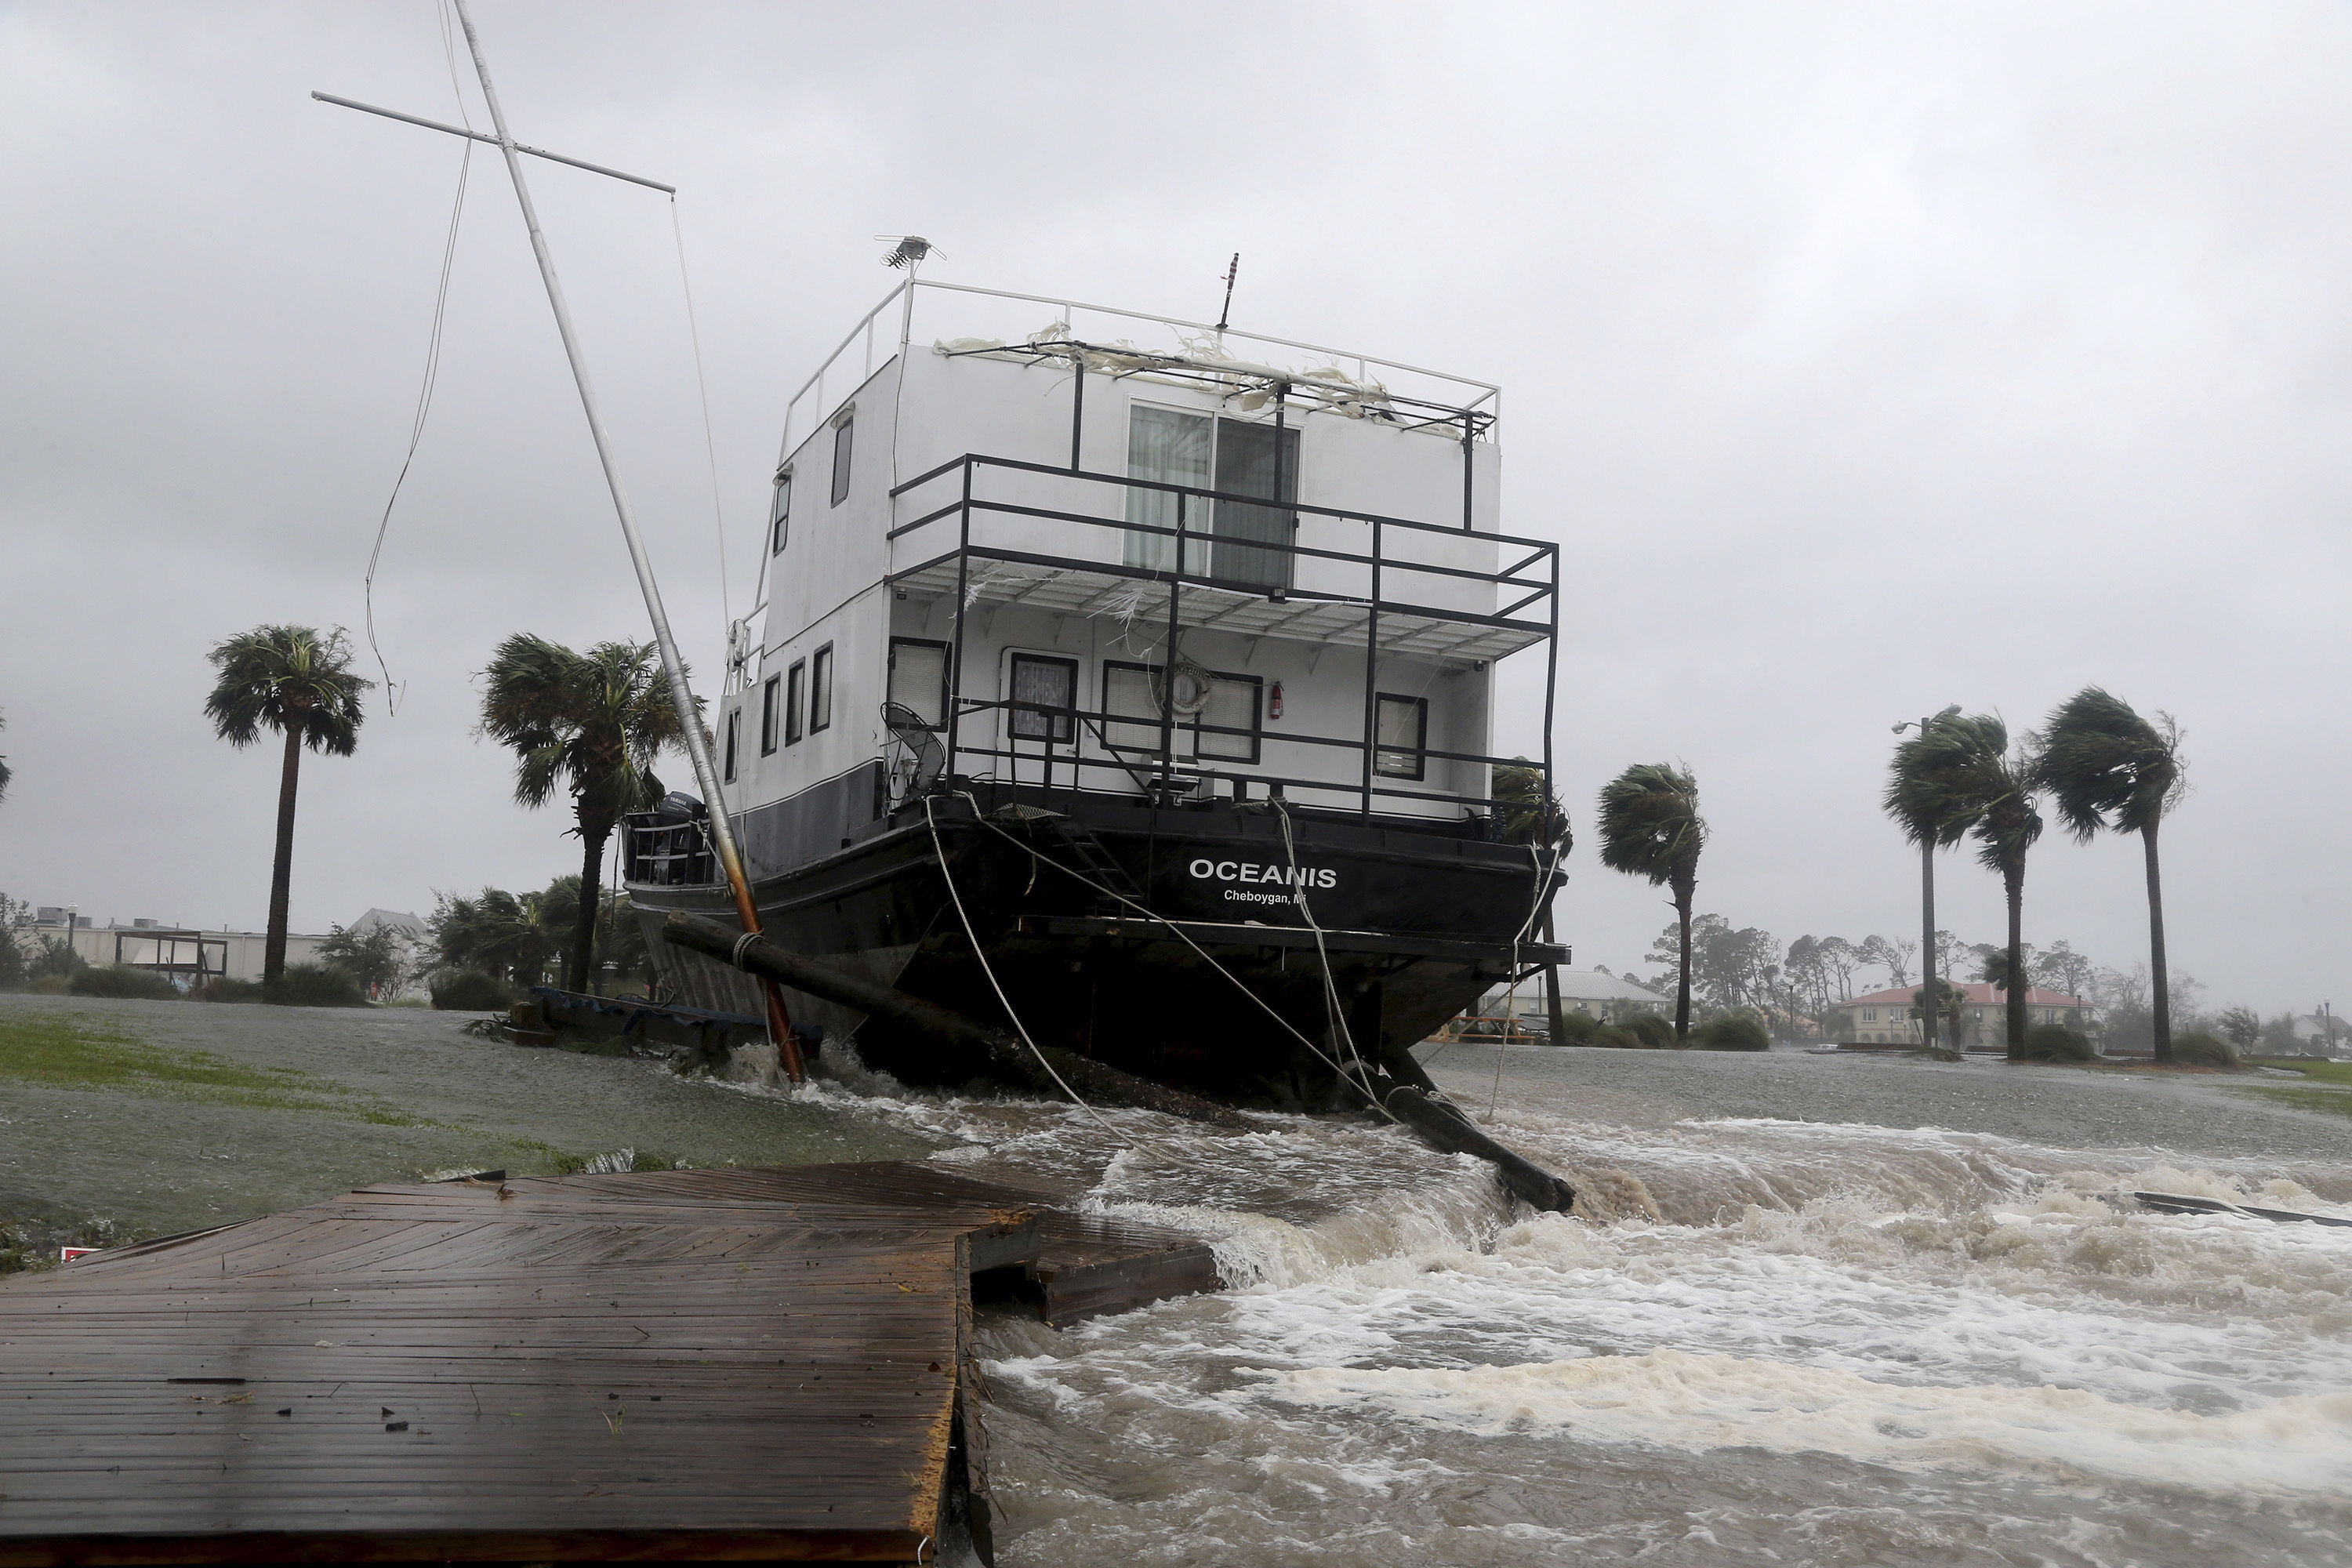 USA  hurricane leaves homes unmoored, power lines damaged